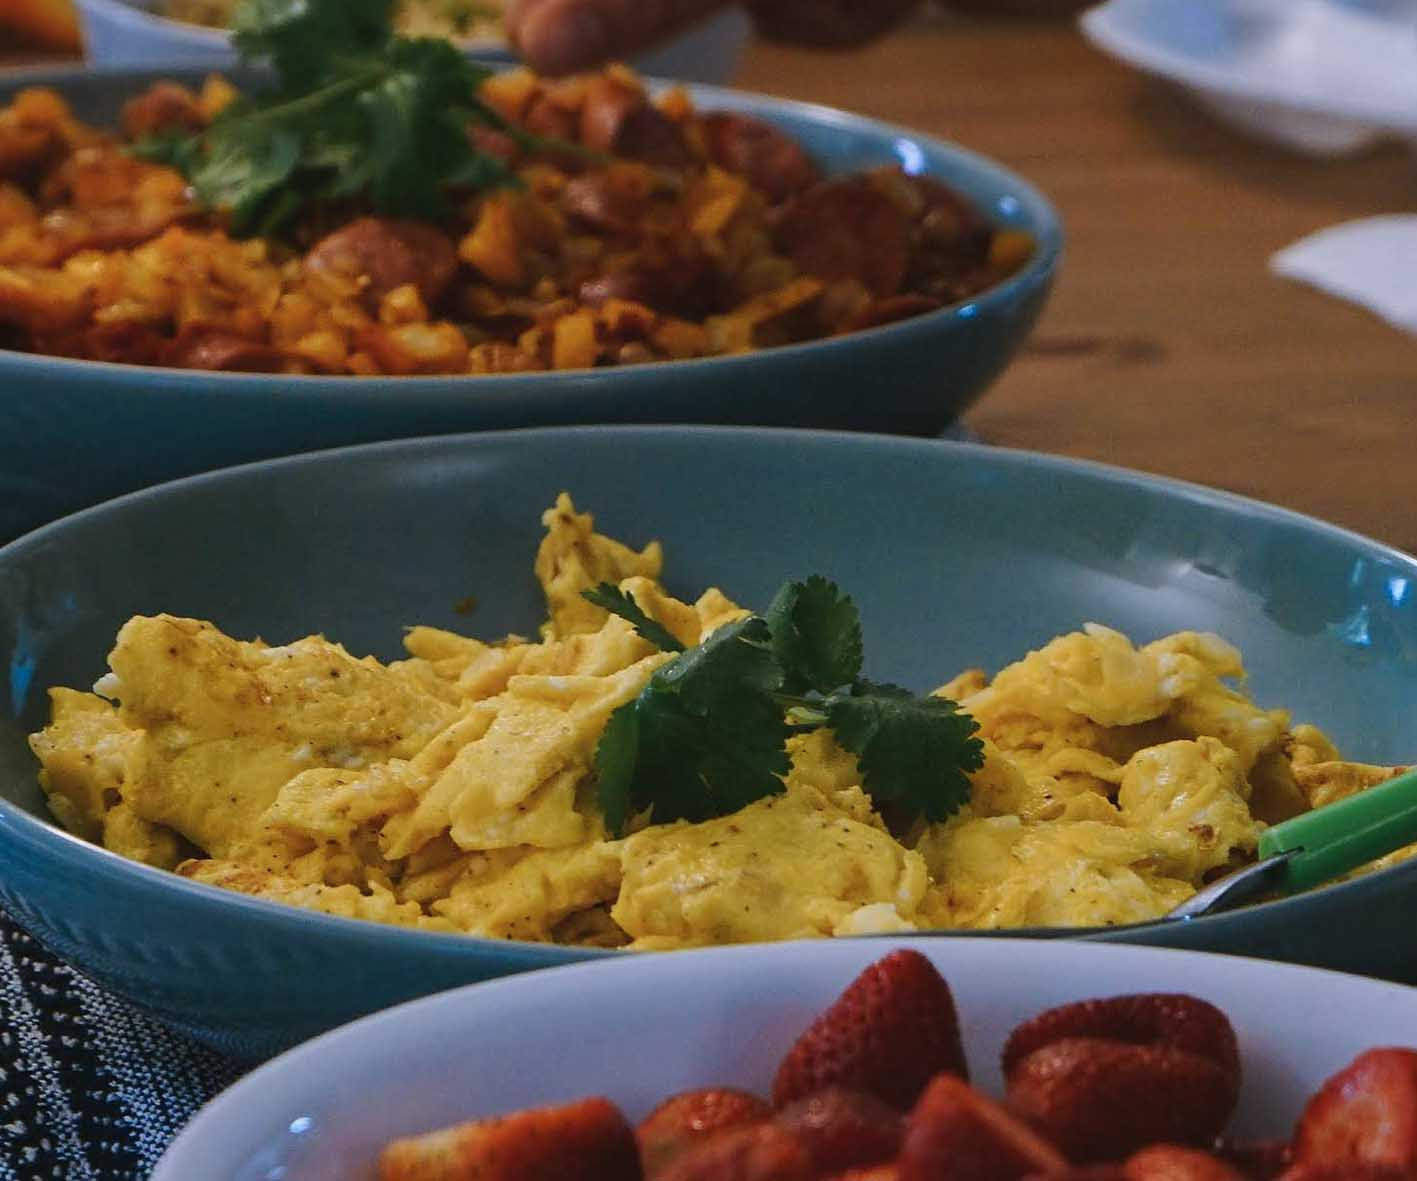 COOKINGPOSTJPEG - QUICK-HEALTHY-DELICIOUS-SCAMBLED-EGGS